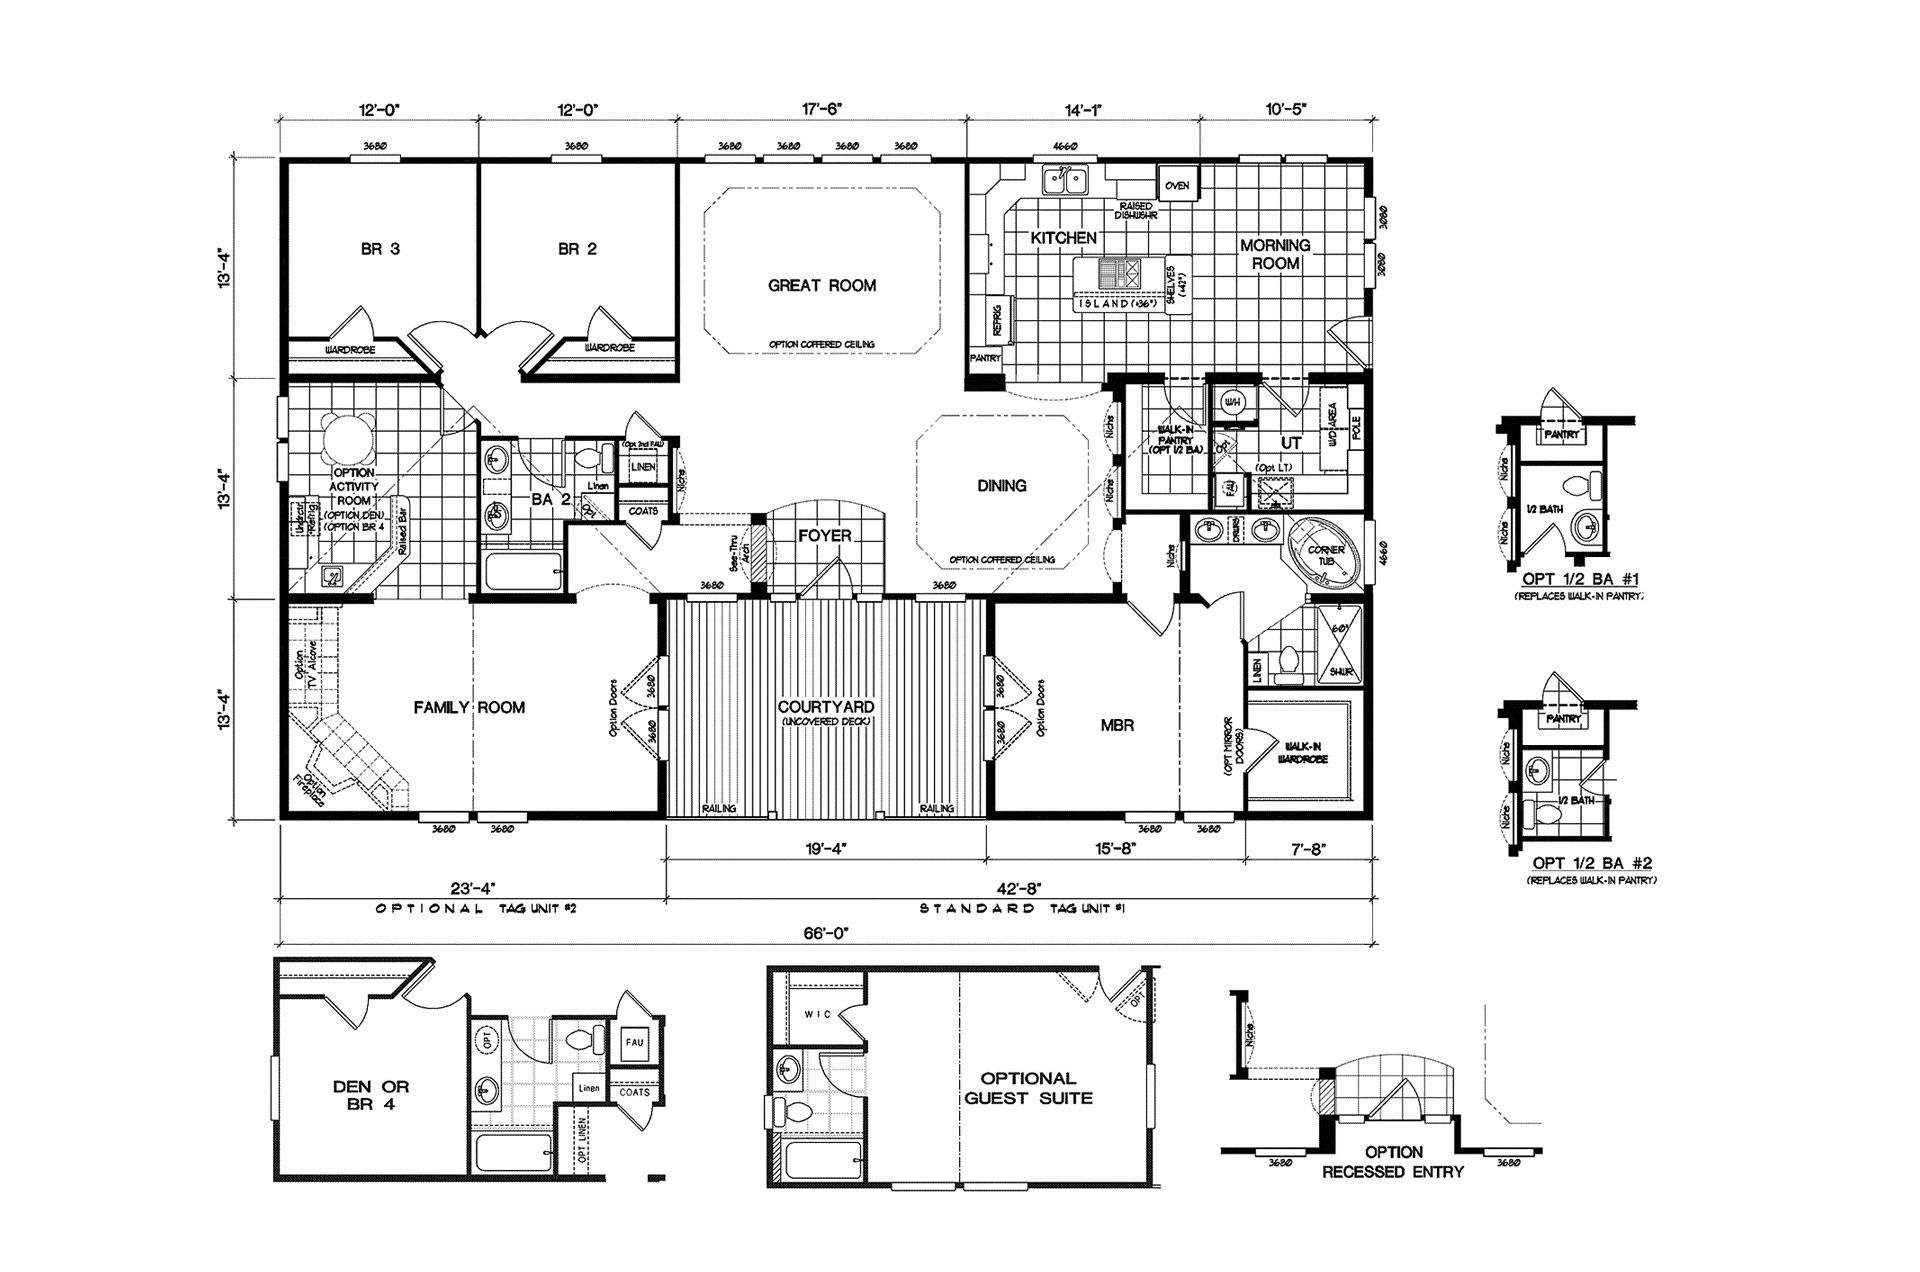 2008 Clayton Quad 51plt42663ah08 Mobile Home Floor Plans House Floor Plans Mobile Home Bathrooms